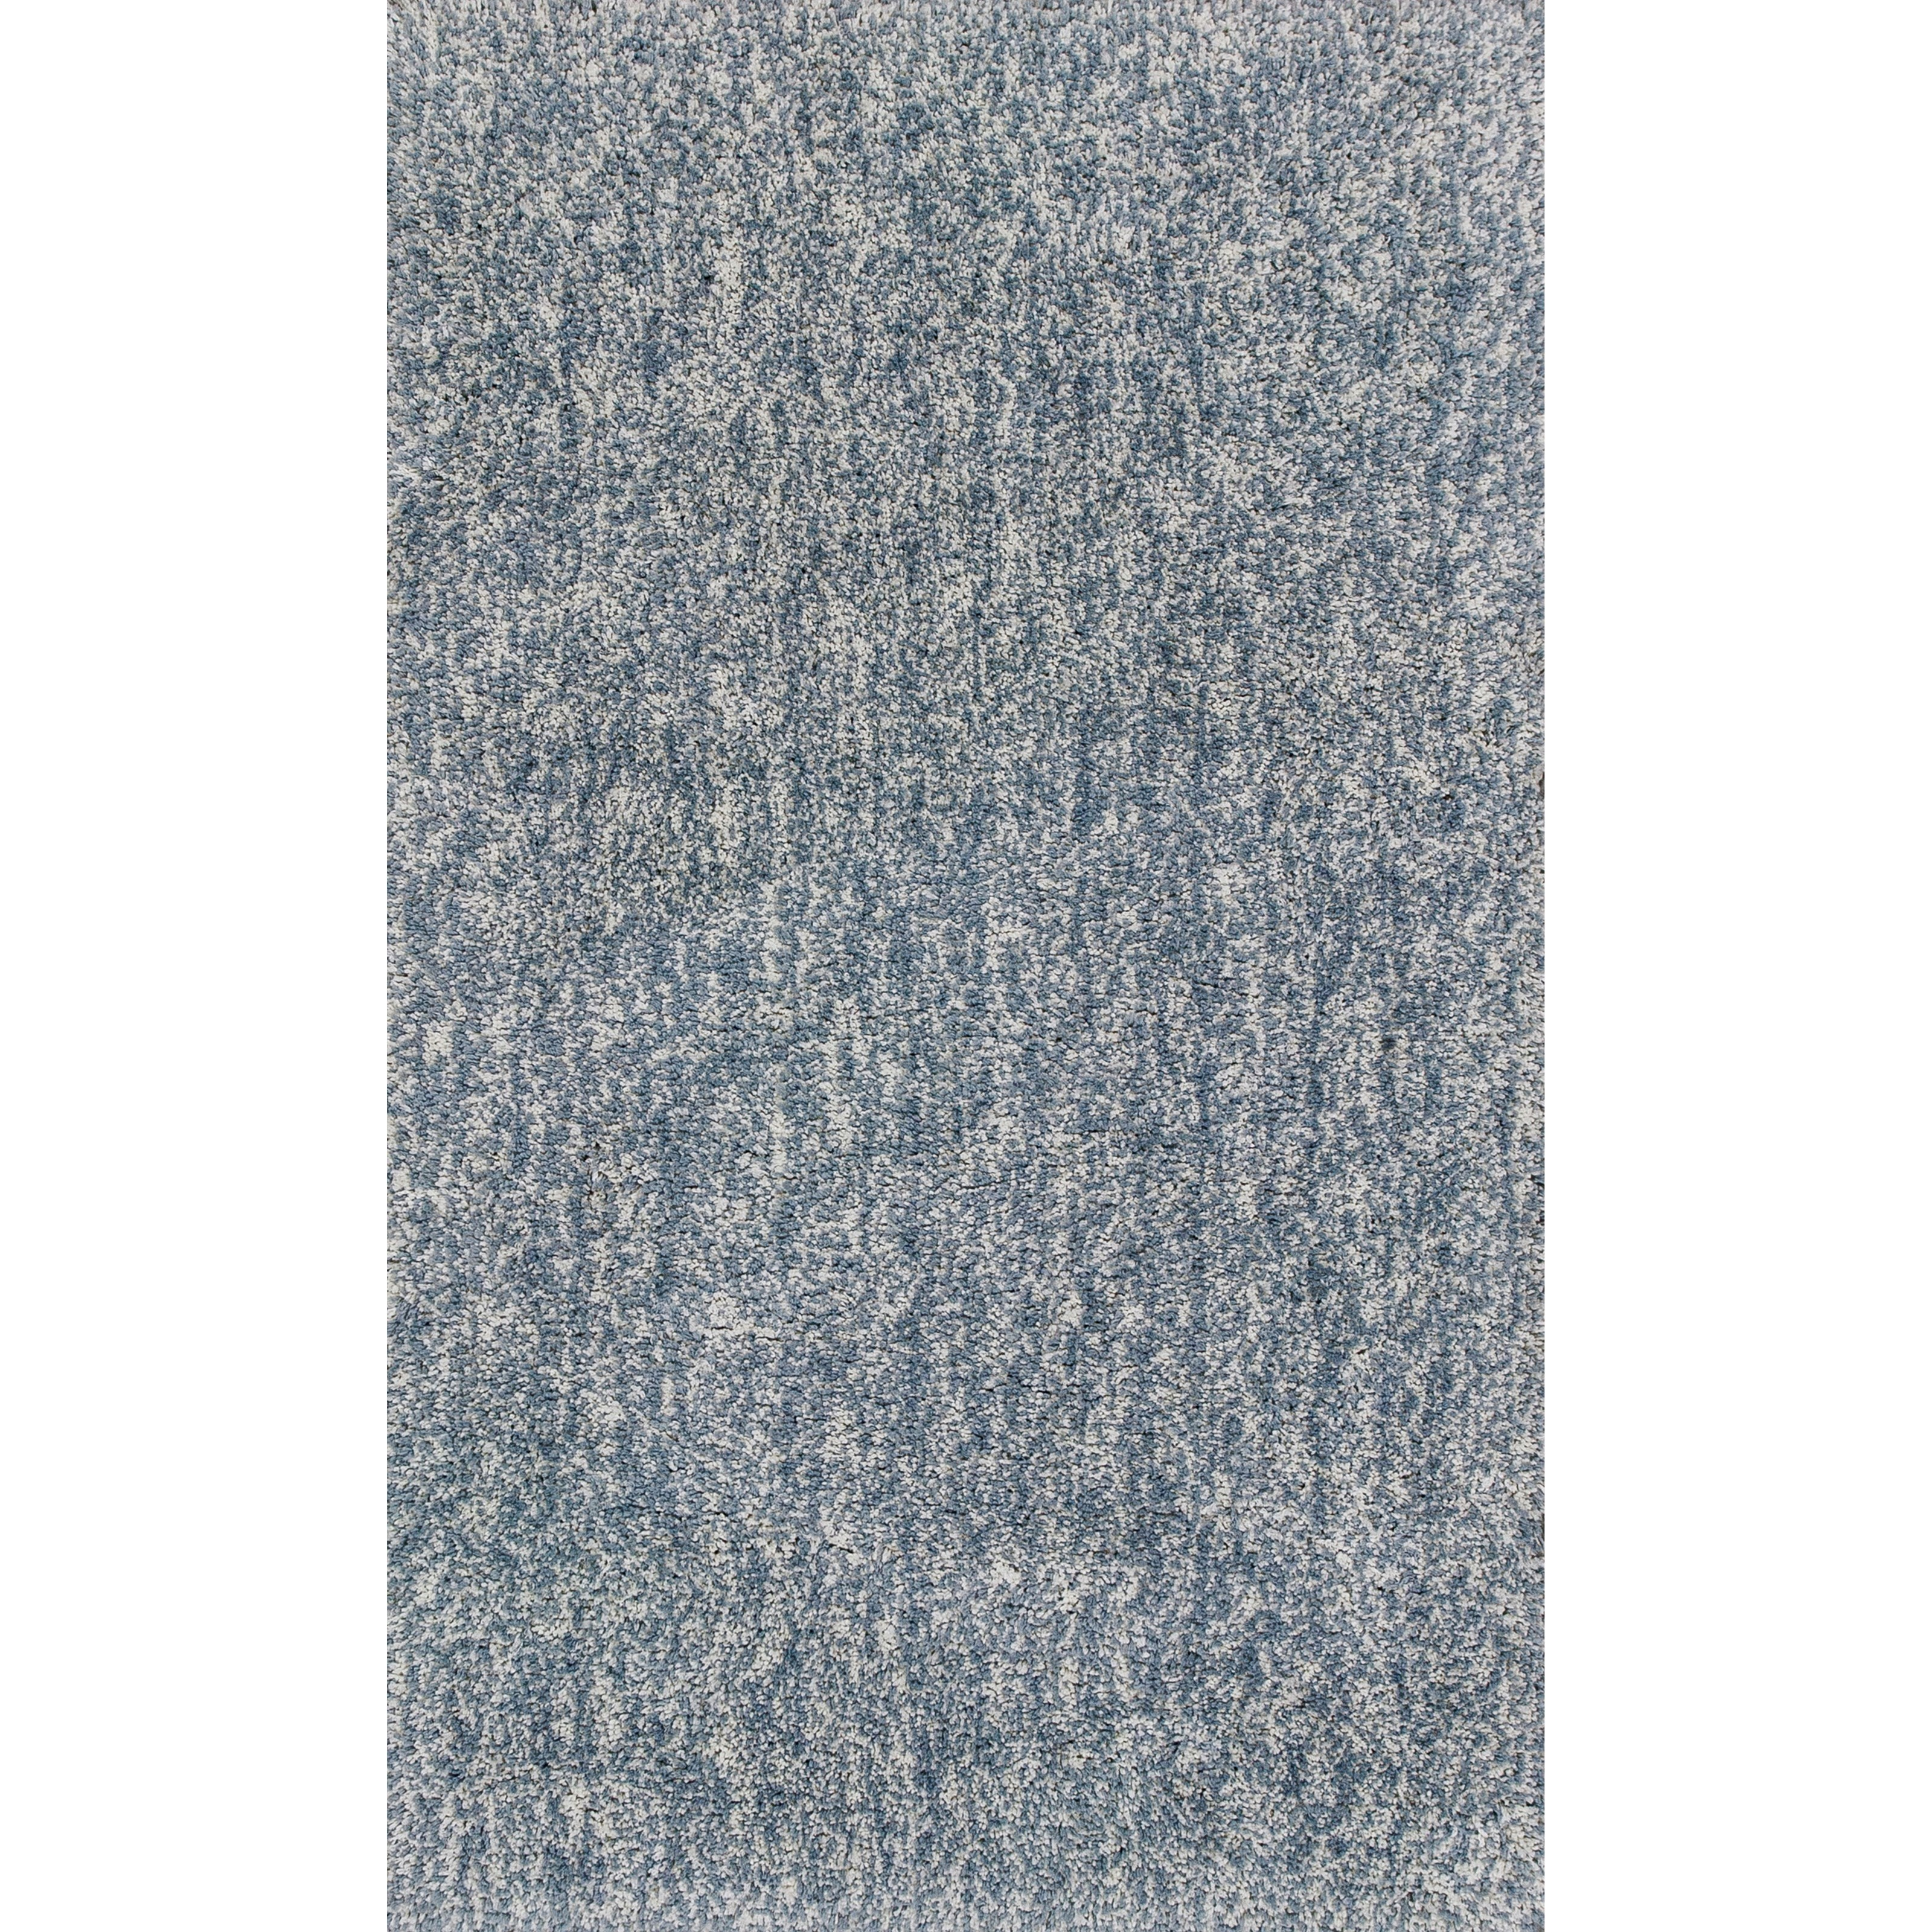 """Bliss 2'3"""" X 3'9"""" Slate Heather Shag Area Rug by Kas at Zak's Home"""